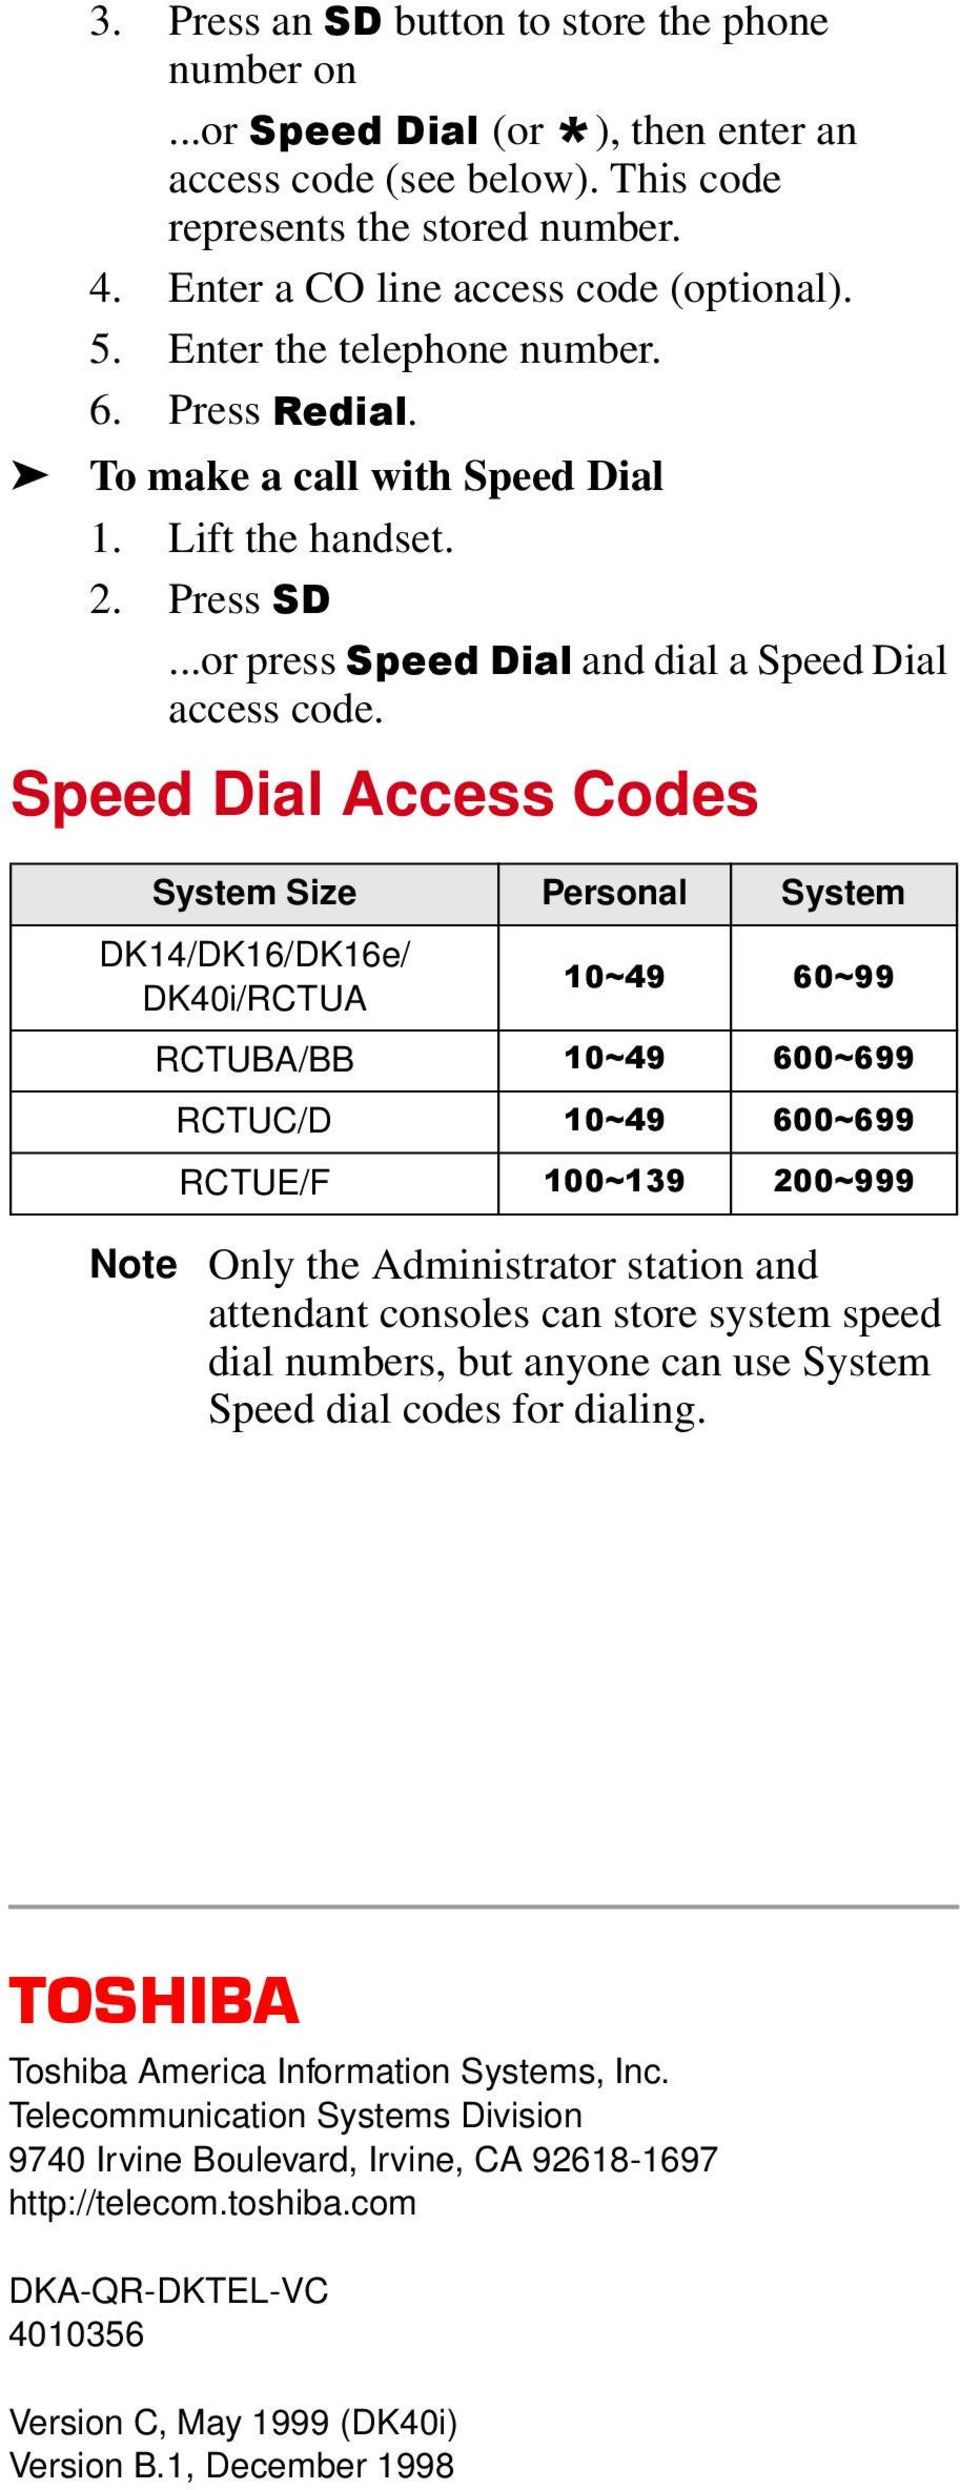 Speed Dial Access Codes System Size Personal System DK14/DK16/DK16e/ DK40i/RCTUA 43a7< 93a<< RCTUBA/BB 43a7< 933a9<< RCTUC/D 43a7< 933a9<< RCTUE/F 433a46< 533a<<< Note Only the Administrator station